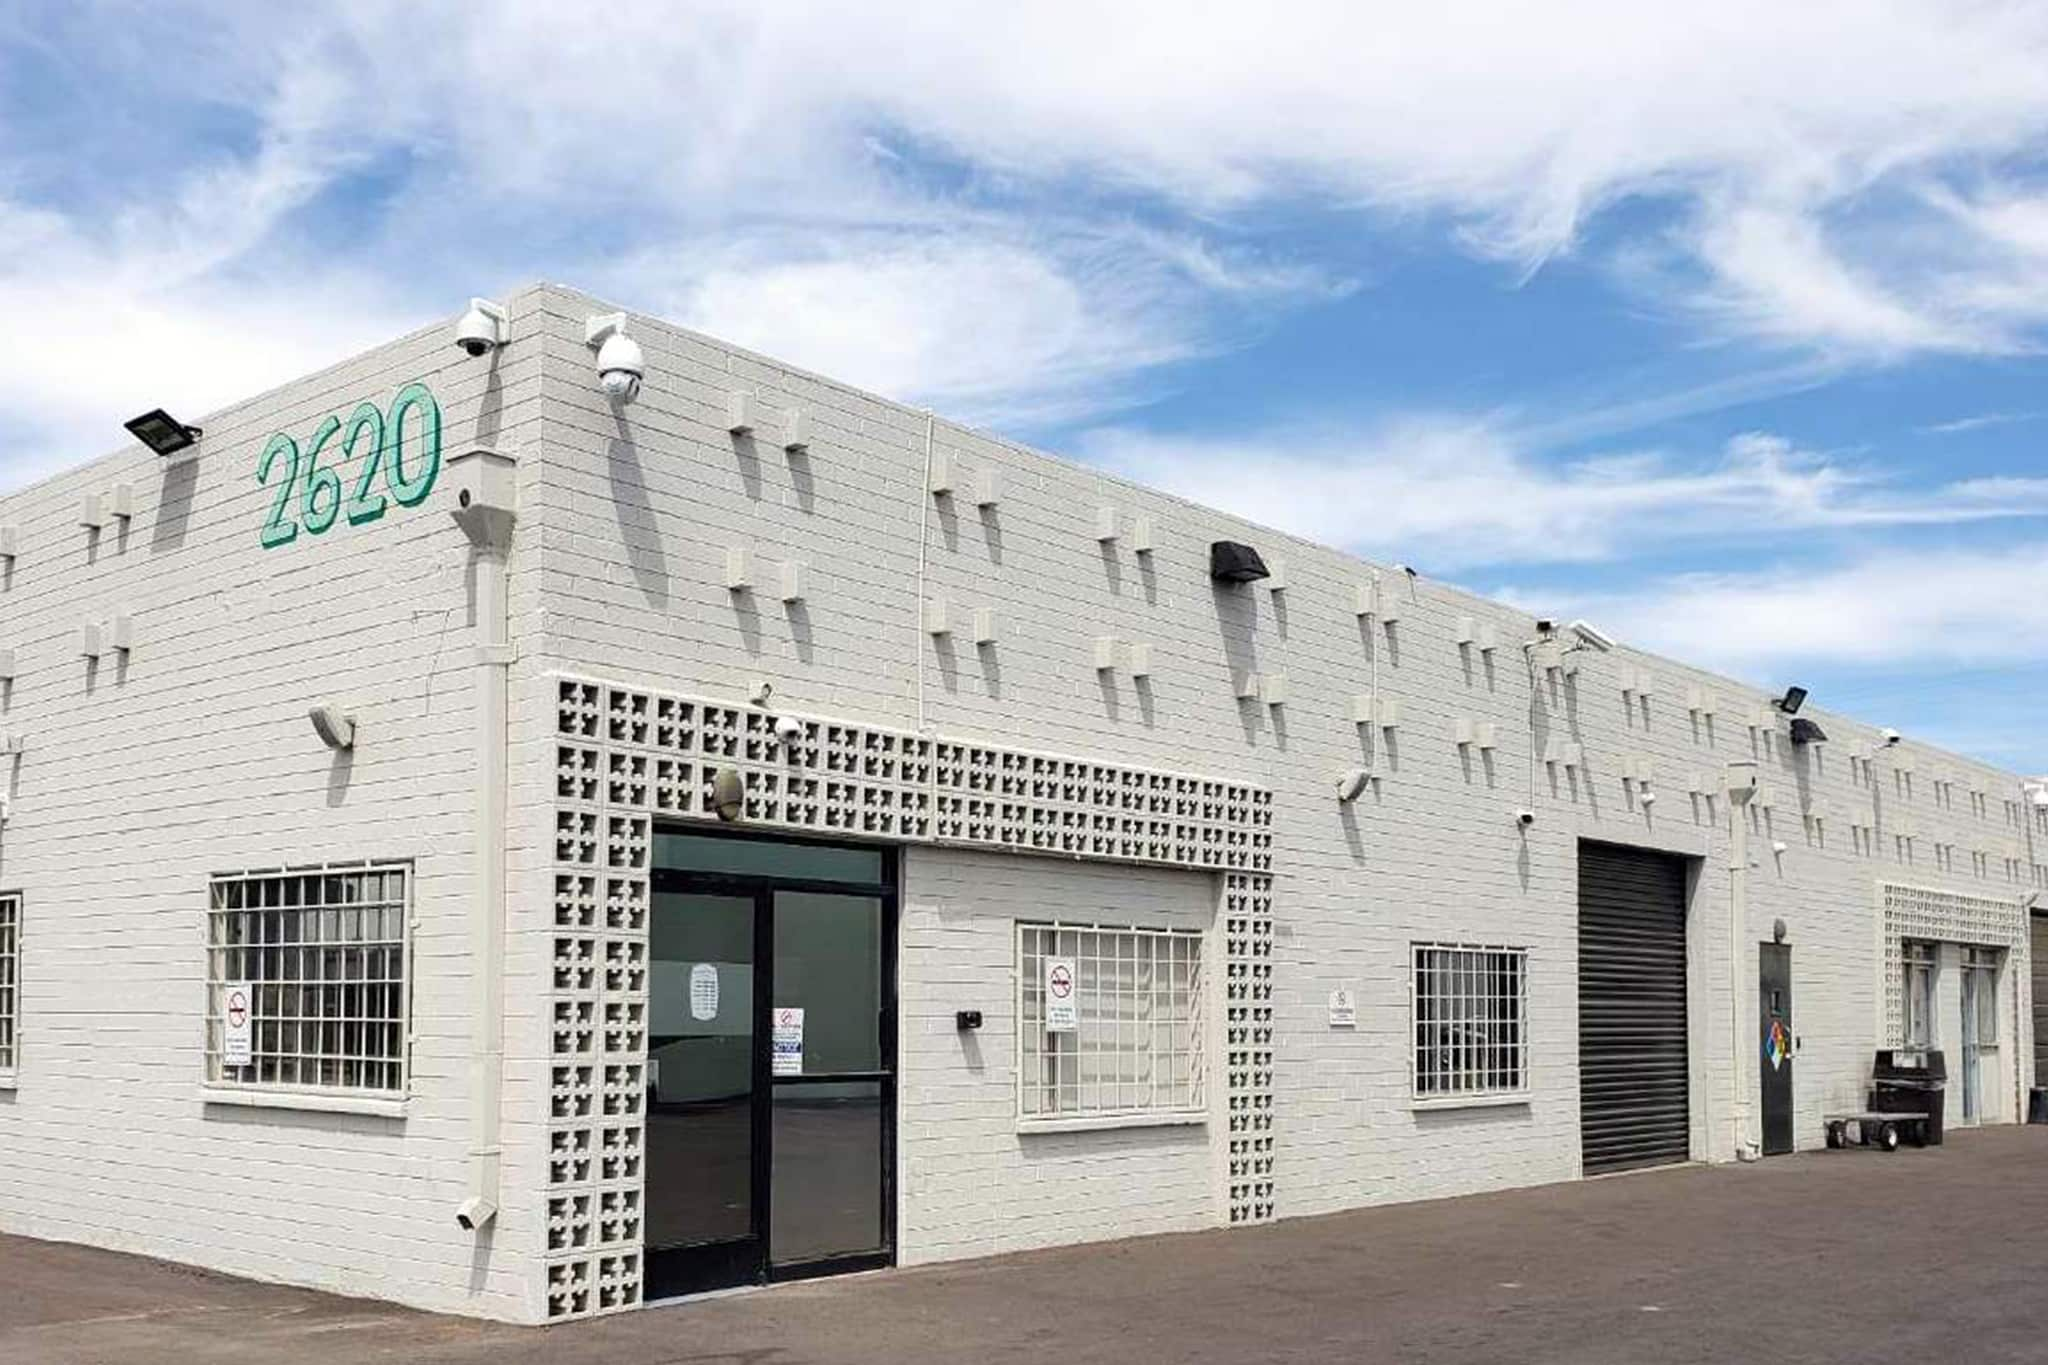 Encanto dispensary building in Arizona